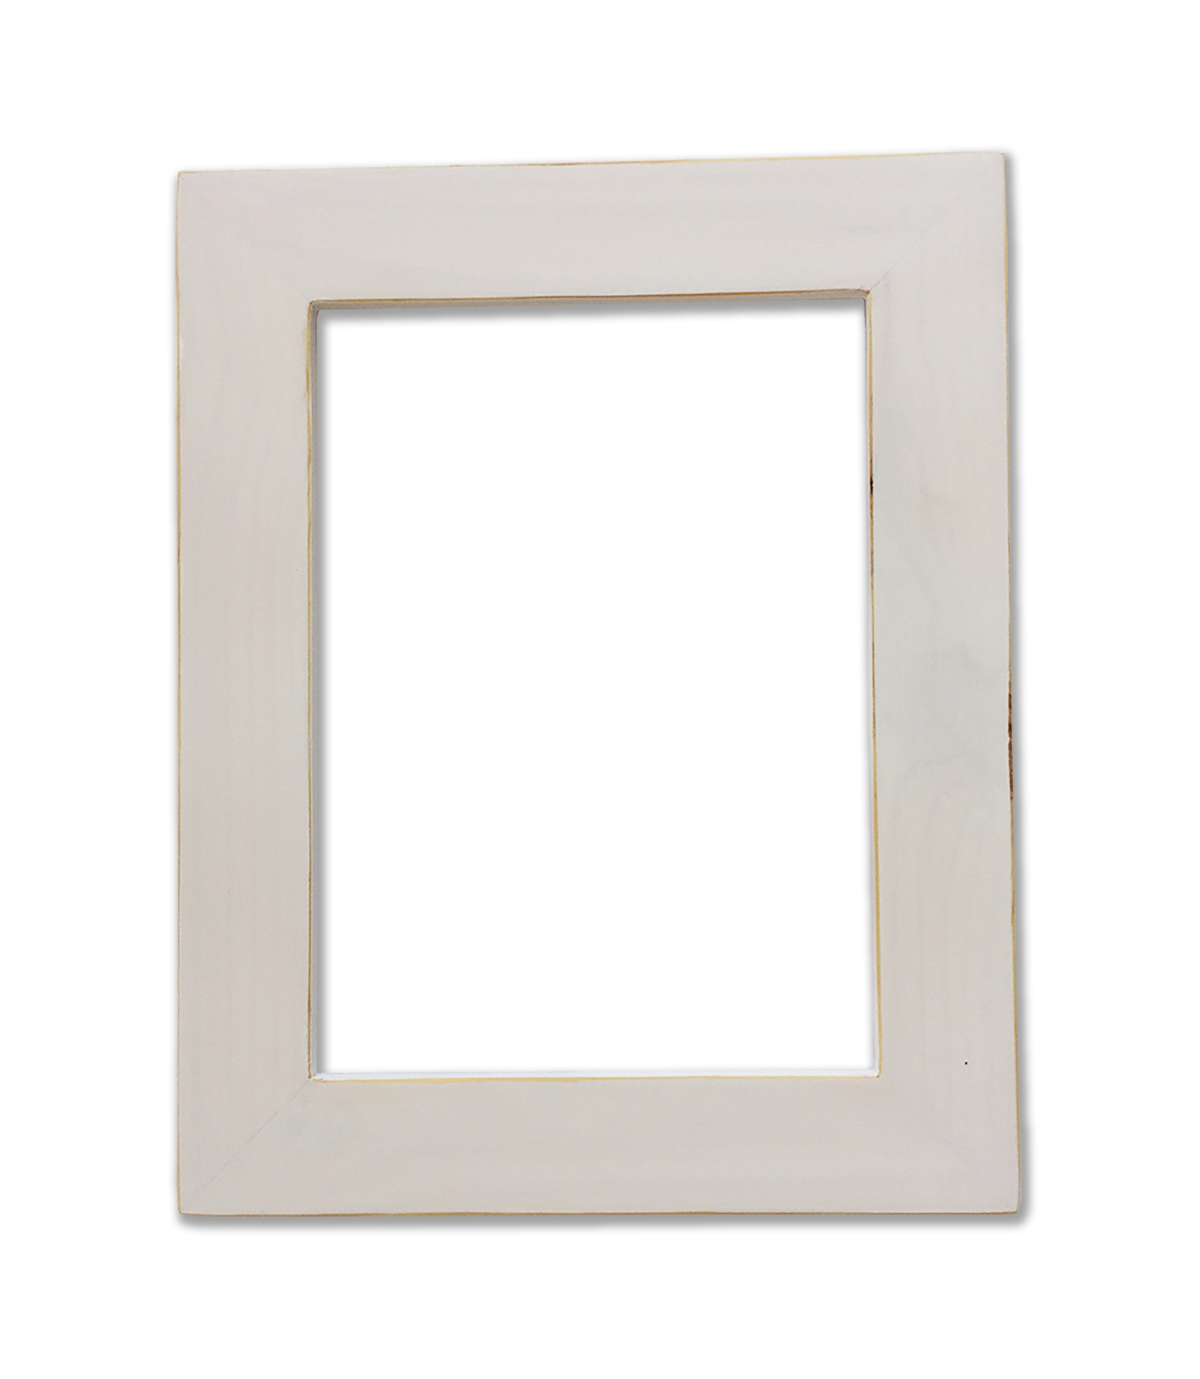 White picture frame png. Solid wood a house